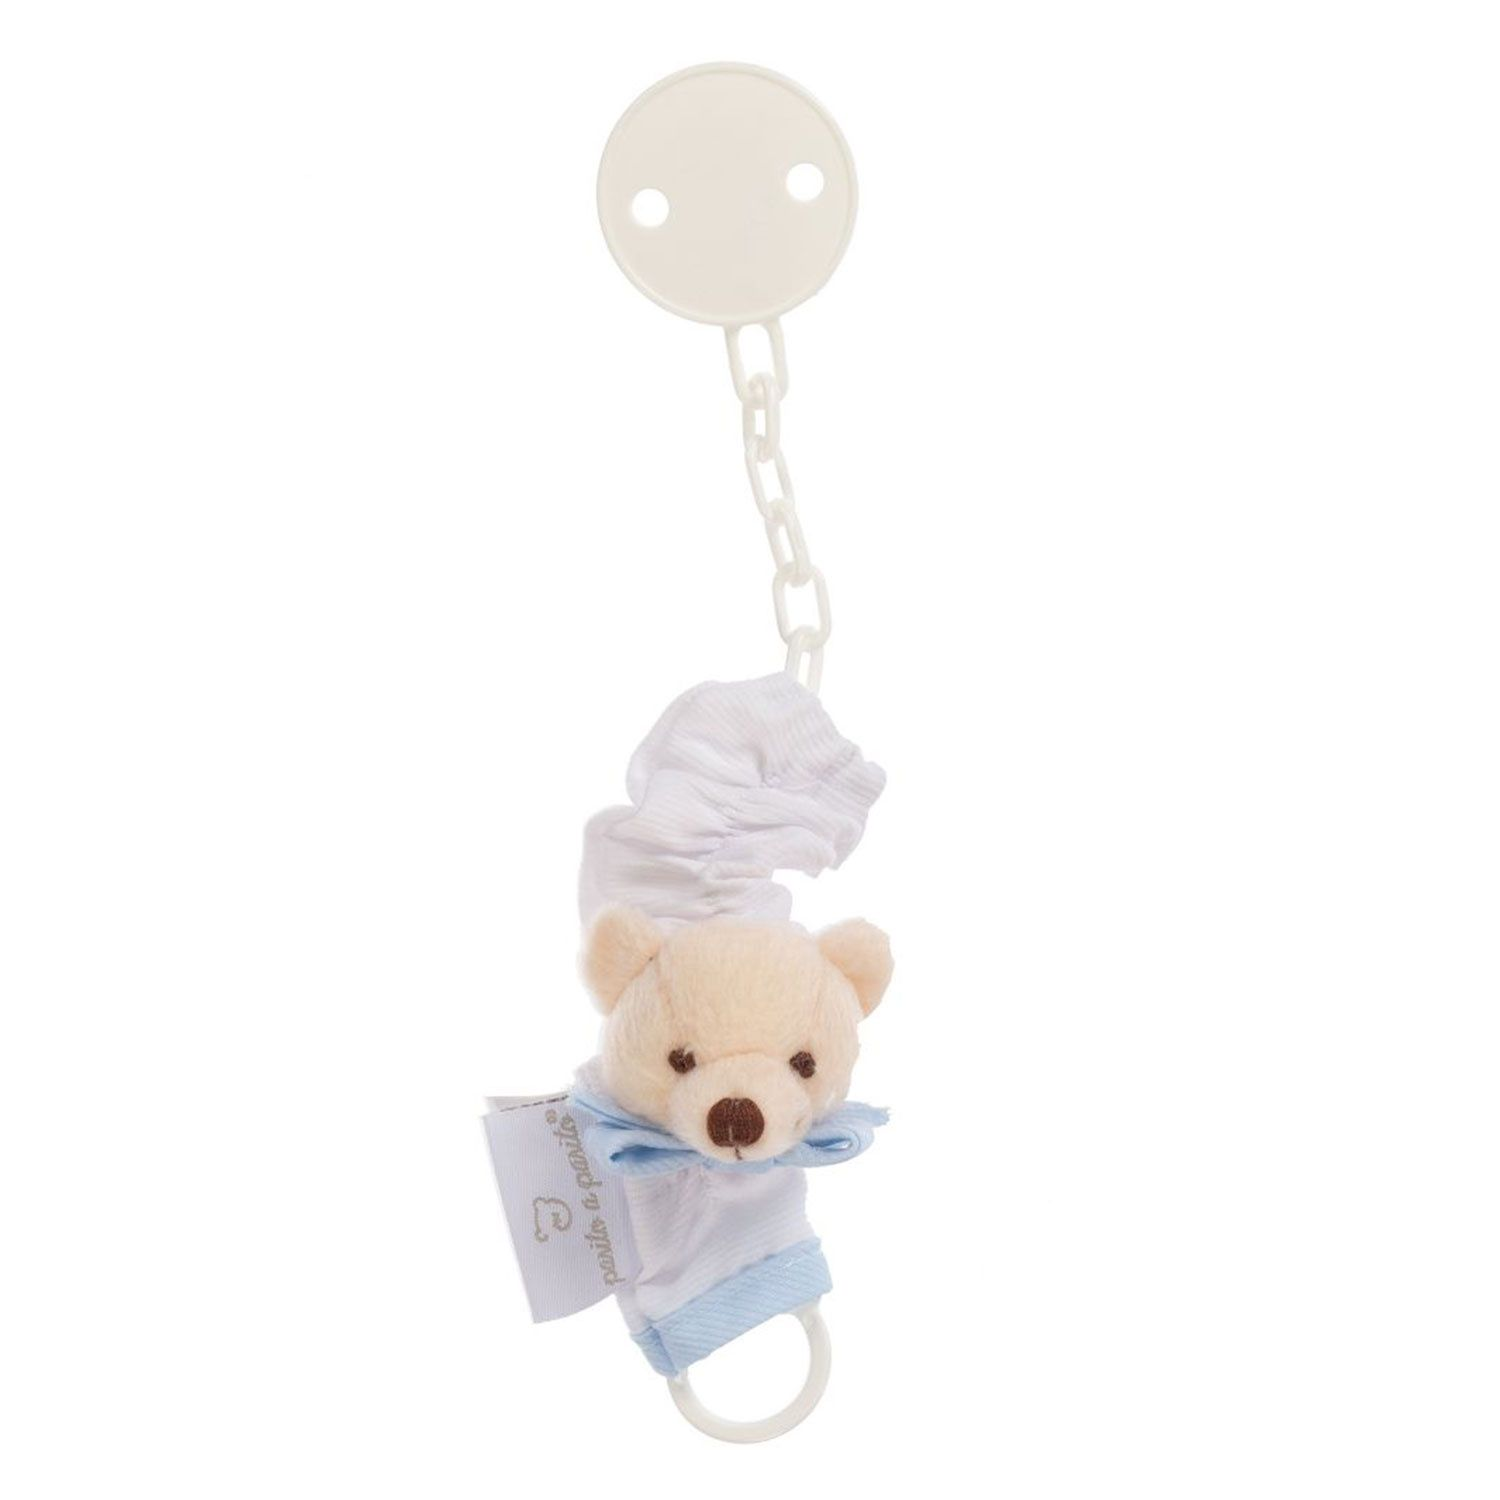 Picture of Pasito a Pasito 64152 baby accessory light blue